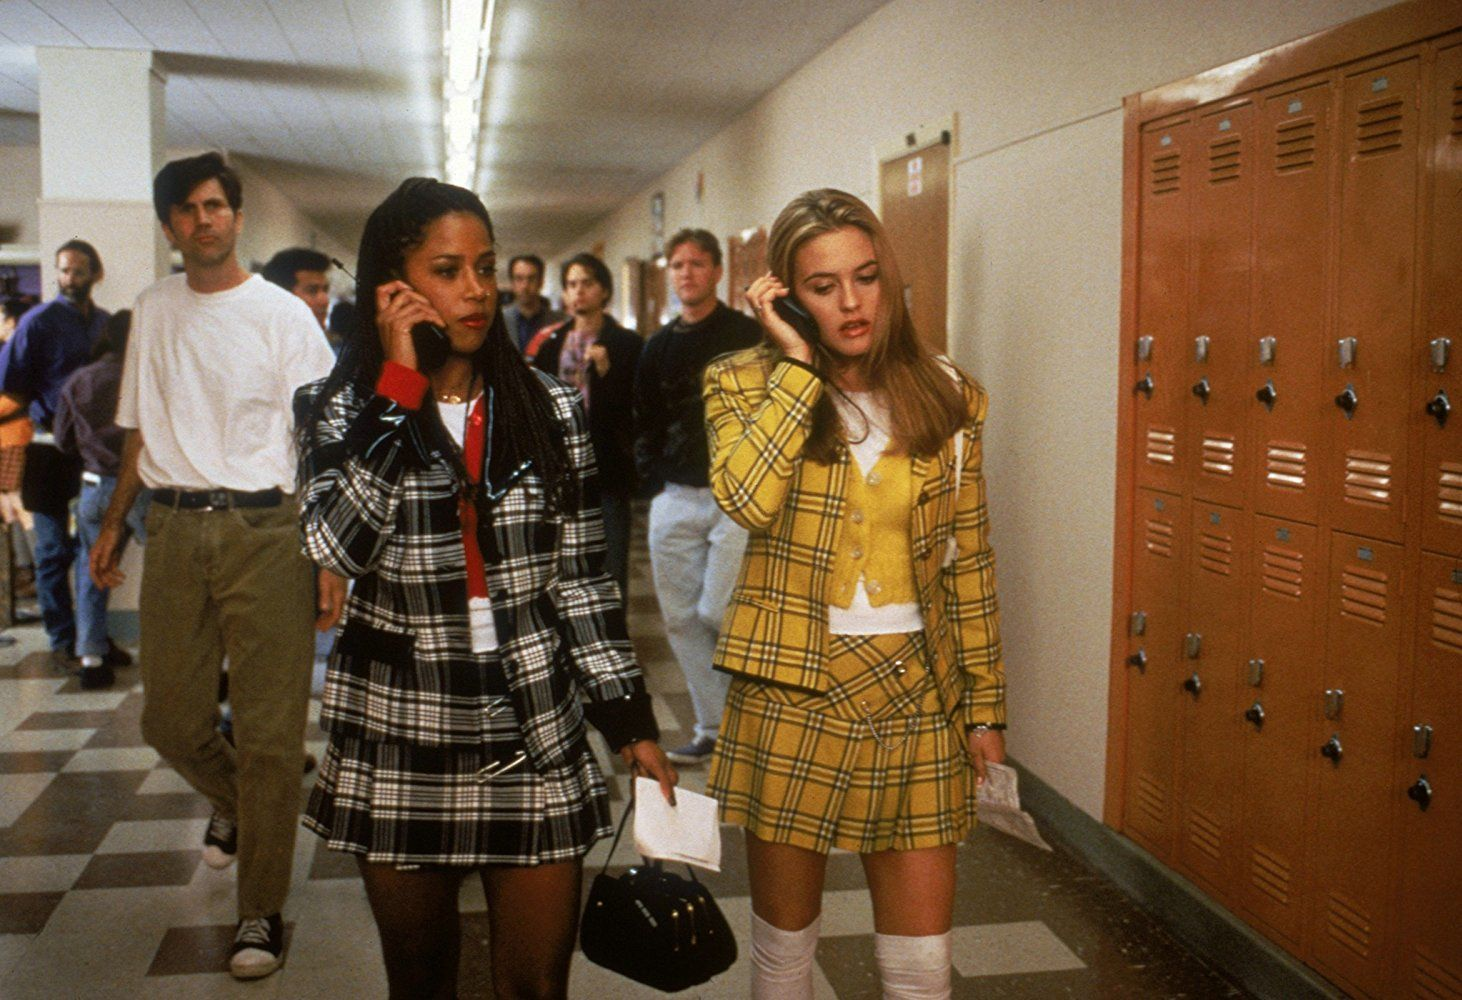 Alicia Silverstone and Stacey Dash in Clueless (1995